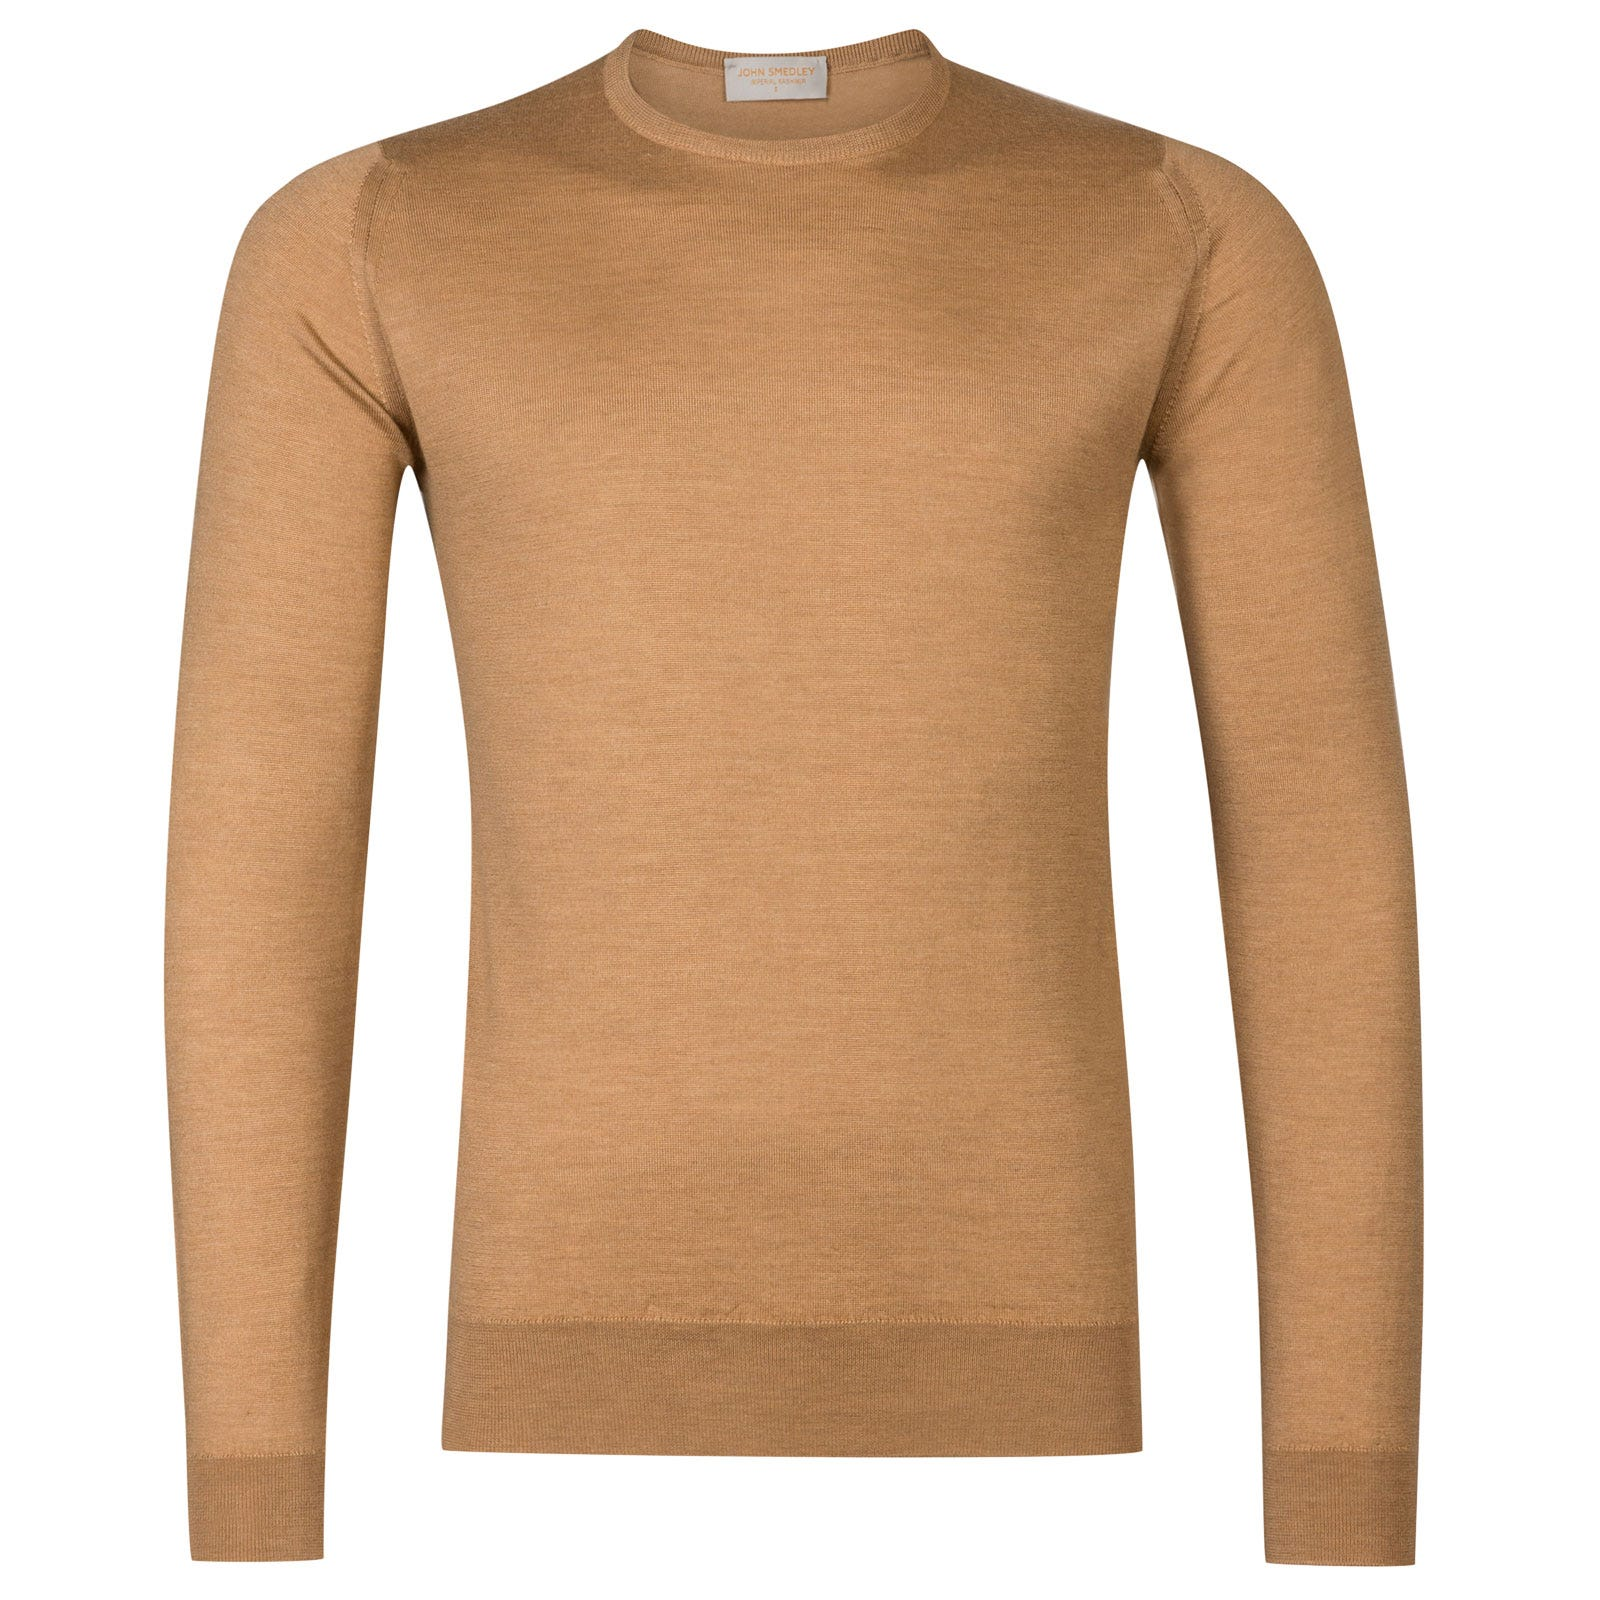 John Smedley Norland Cashmere and Silk Pullover in Camel-XXL